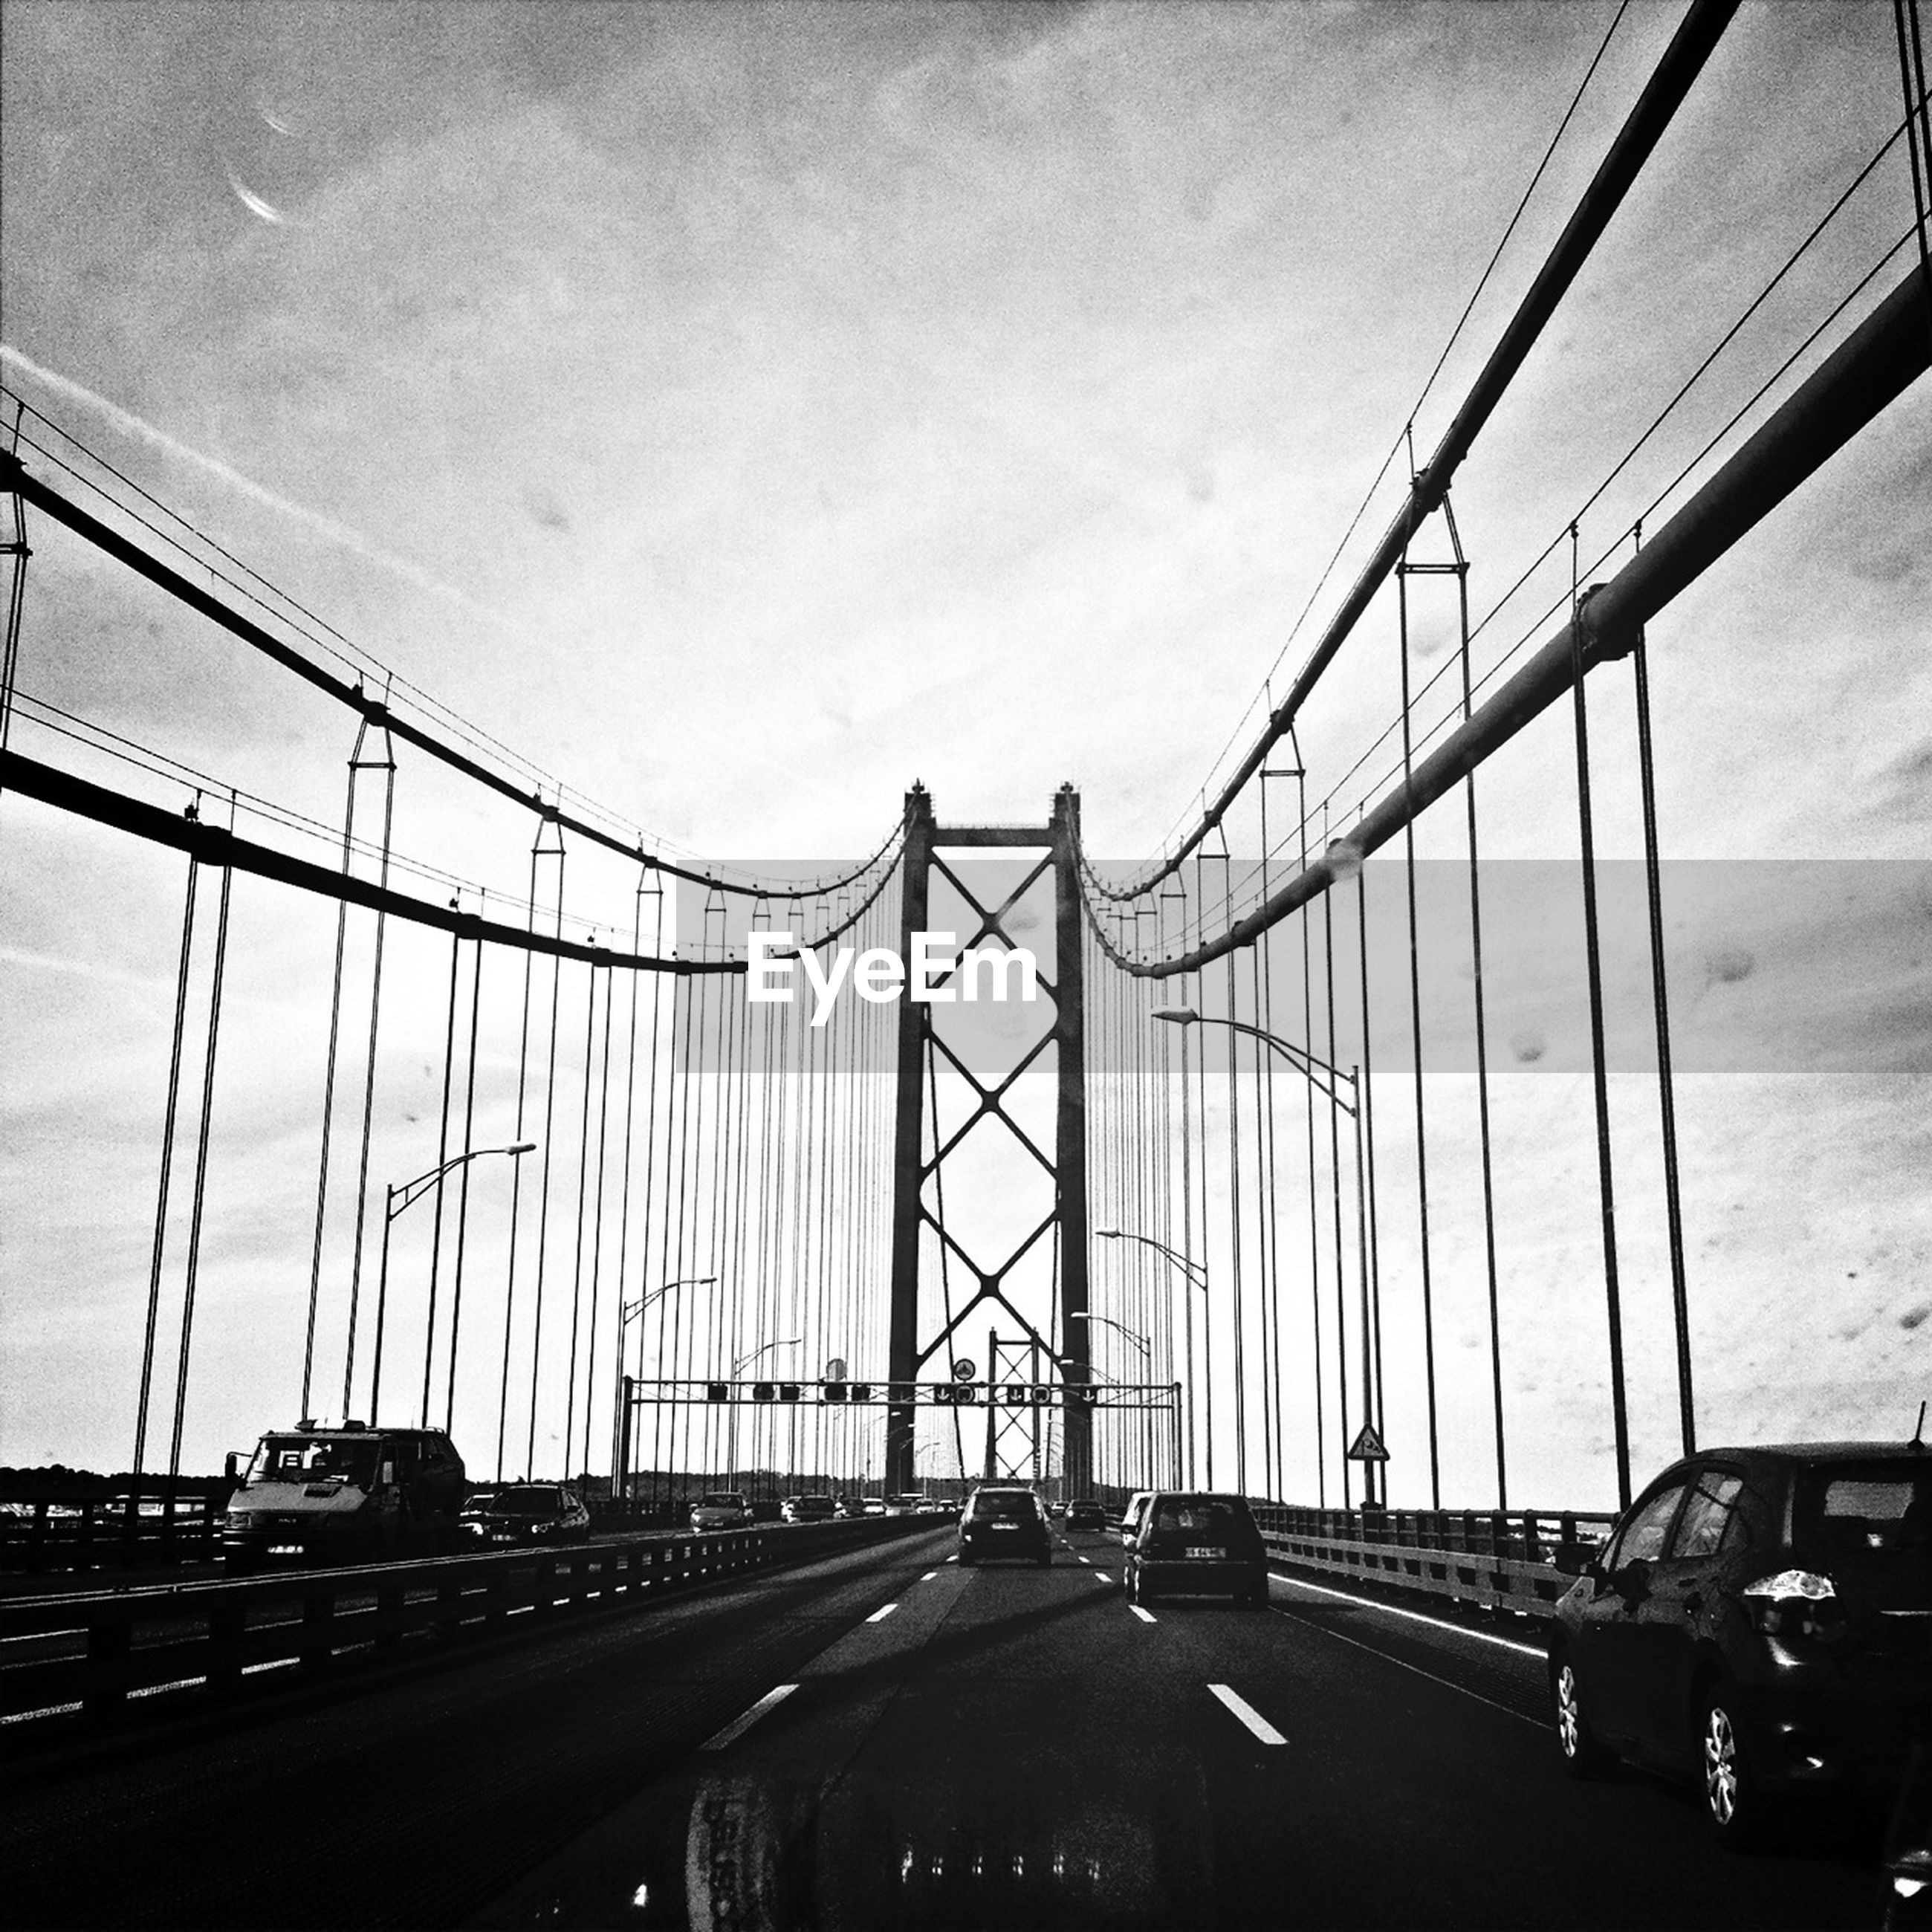 transportation, car, connection, road, mode of transport, land vehicle, sky, bridge - man made structure, the way forward, road marking, engineering, built structure, diminishing perspective, highway, architecture, on the move, suspension bridge, cloud - sky, travel, low angle view